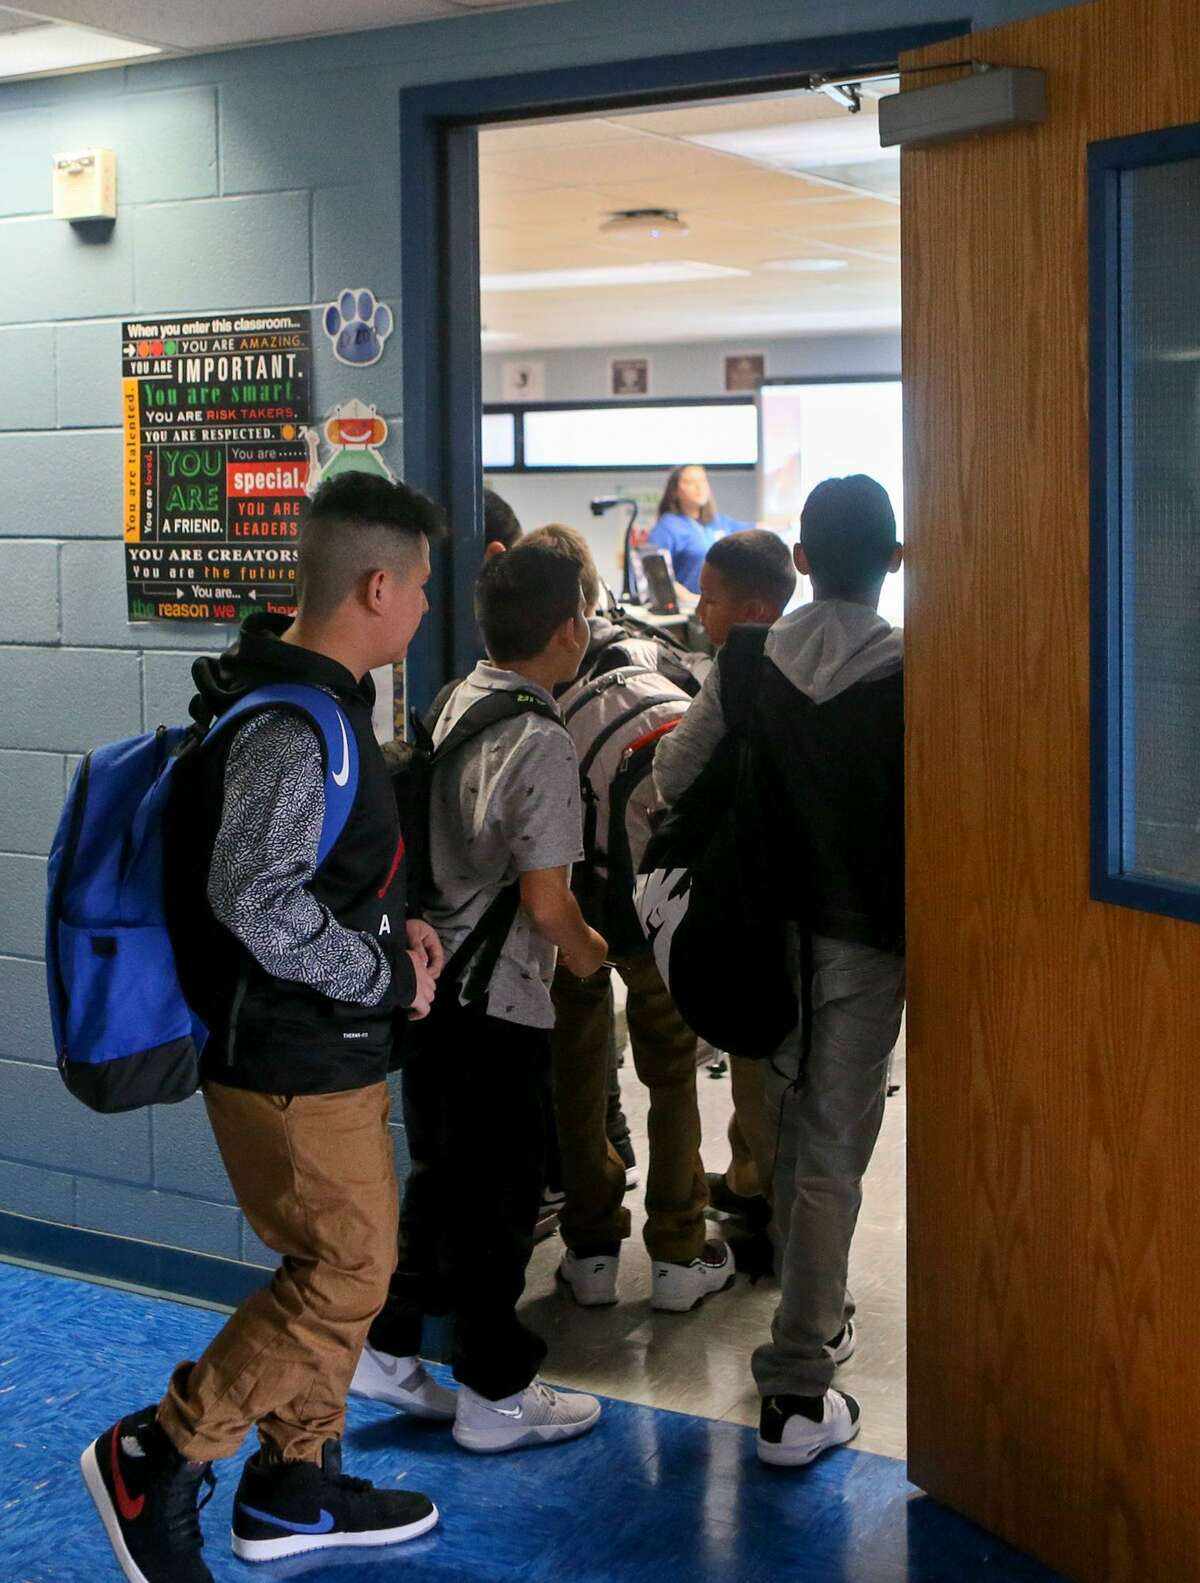 Students enter Ashley Barrera's 6th-grade Advanced STEM Science class at Dwight Middle School on the first day of school on Monday, Aug. 20, 2018. Hundreds of students, about half of all South San incoming sixth graders, have enrolled in the middle school academies, which will allow students to specialize in STEM, health science or fine arts and challenge them with advanced coursework.